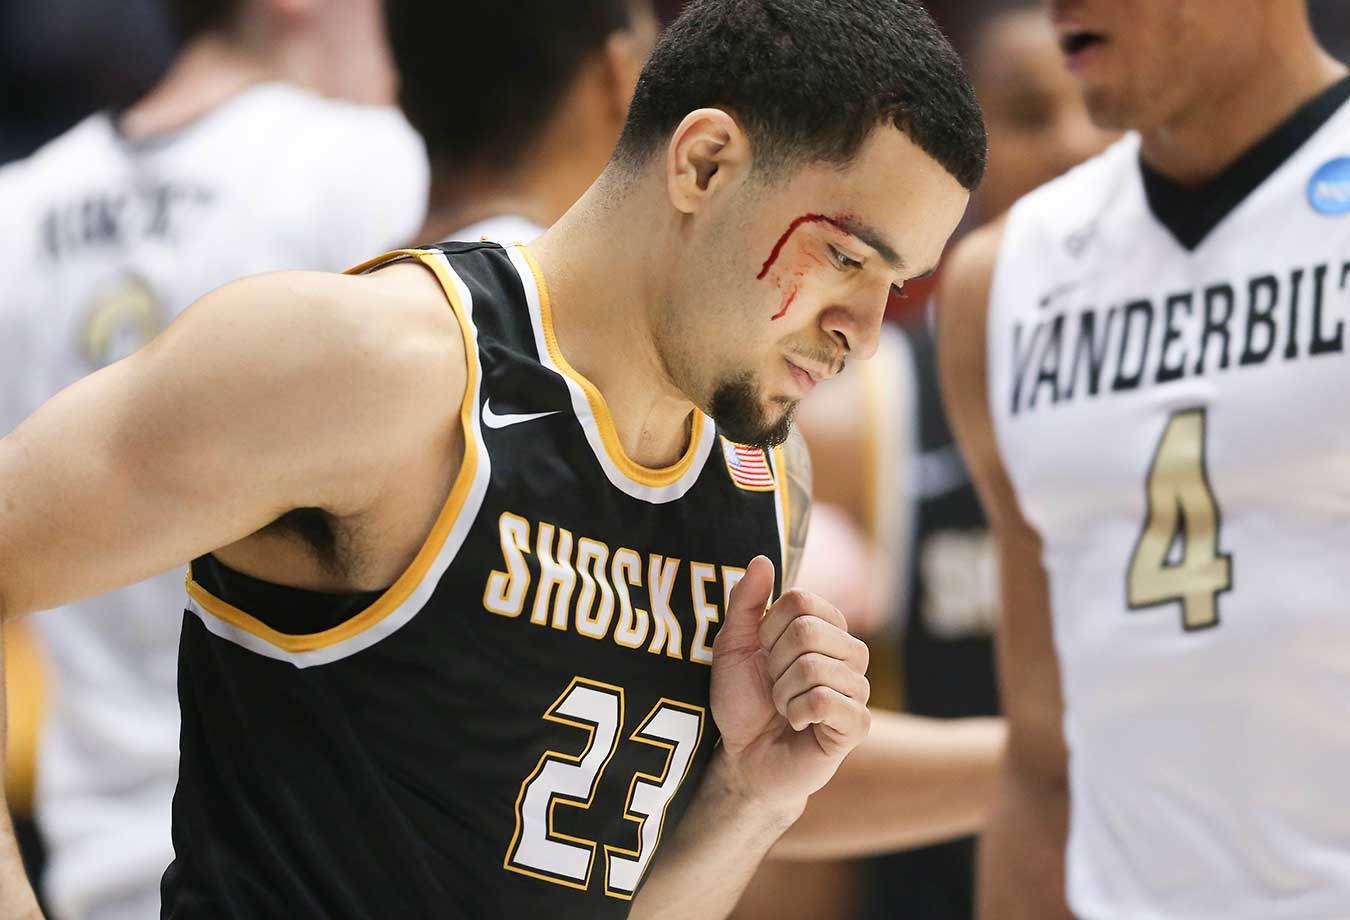 Wichita State's Fred VanVleet is bloodied after taking an elbow to the face against Vanderbilt.